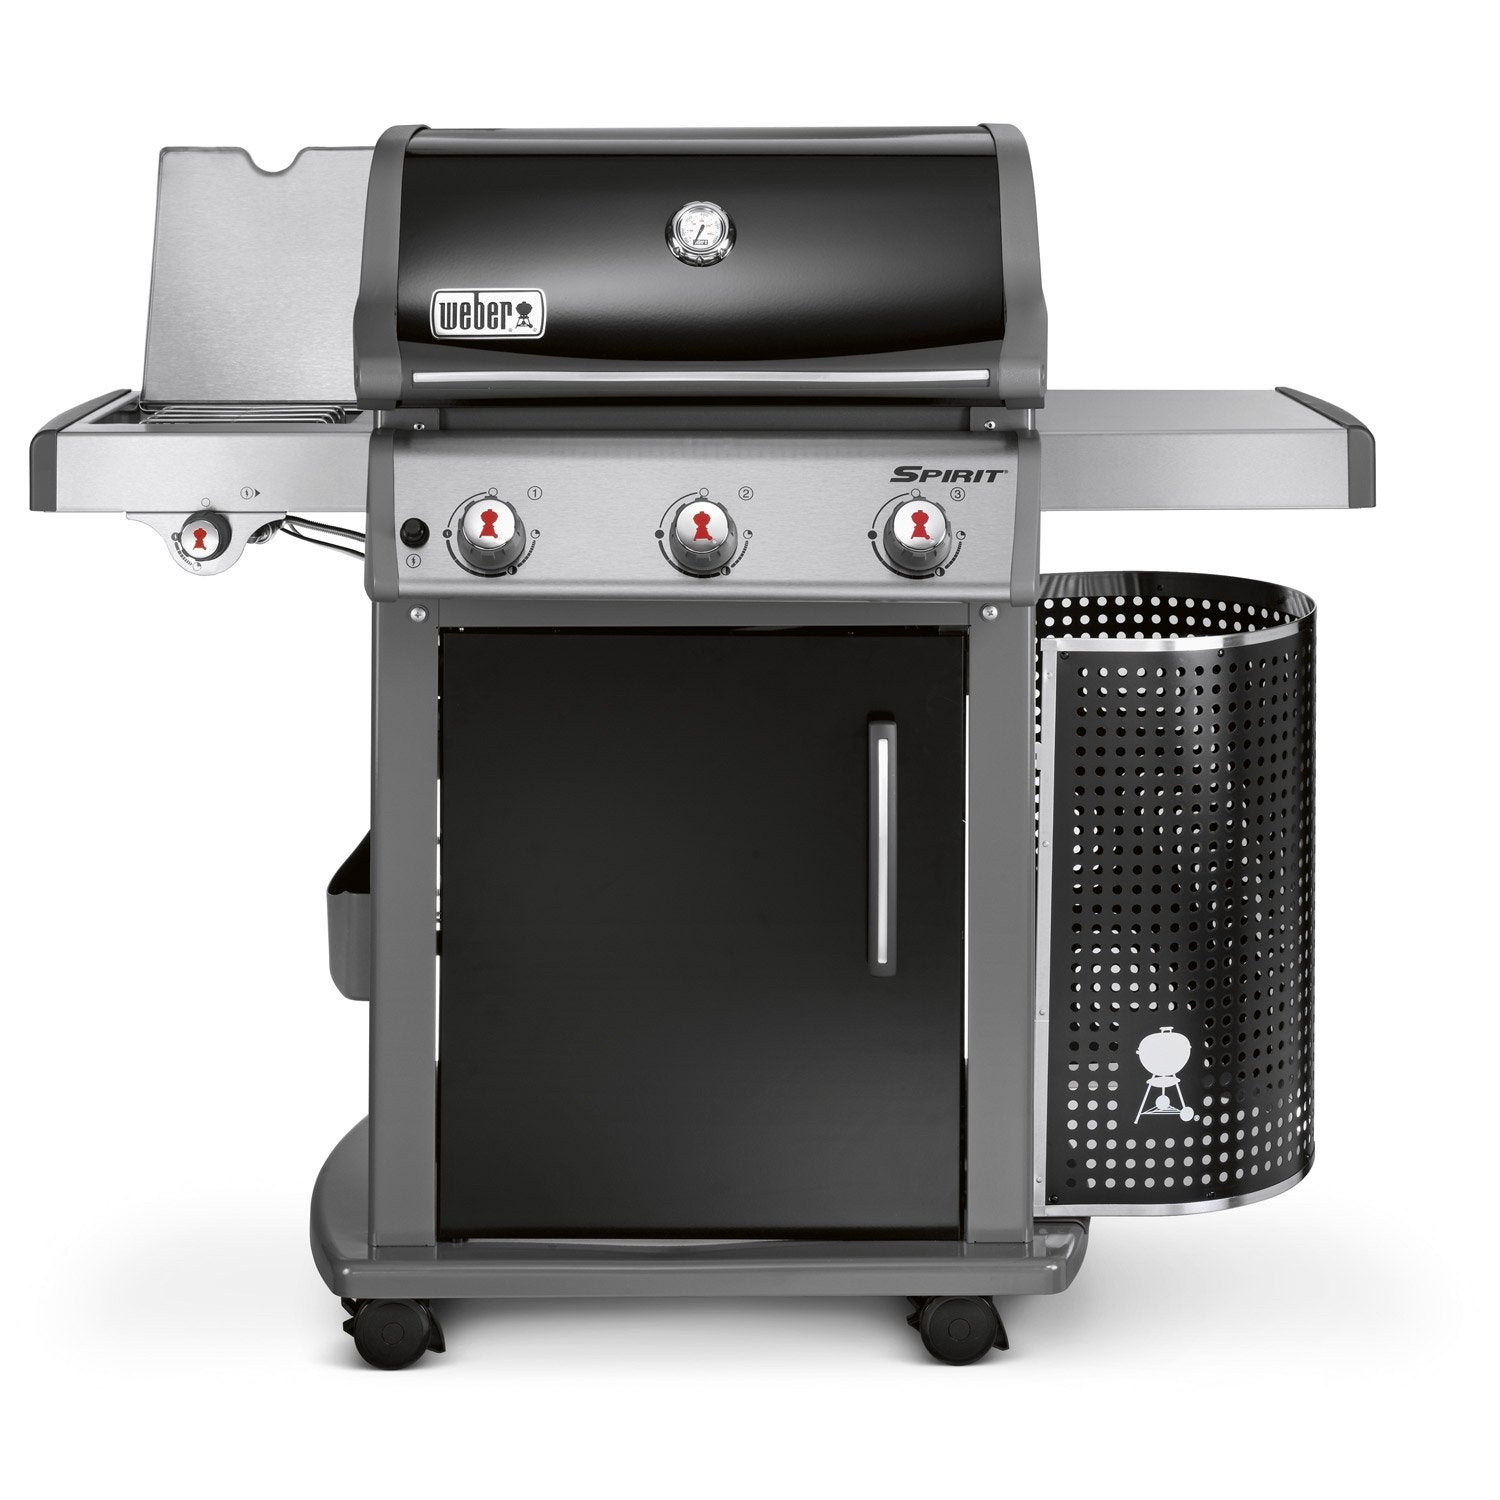 Barbecue au gaz weber spirit e320 black leroy merlin - Barbecue weber a gaz ...